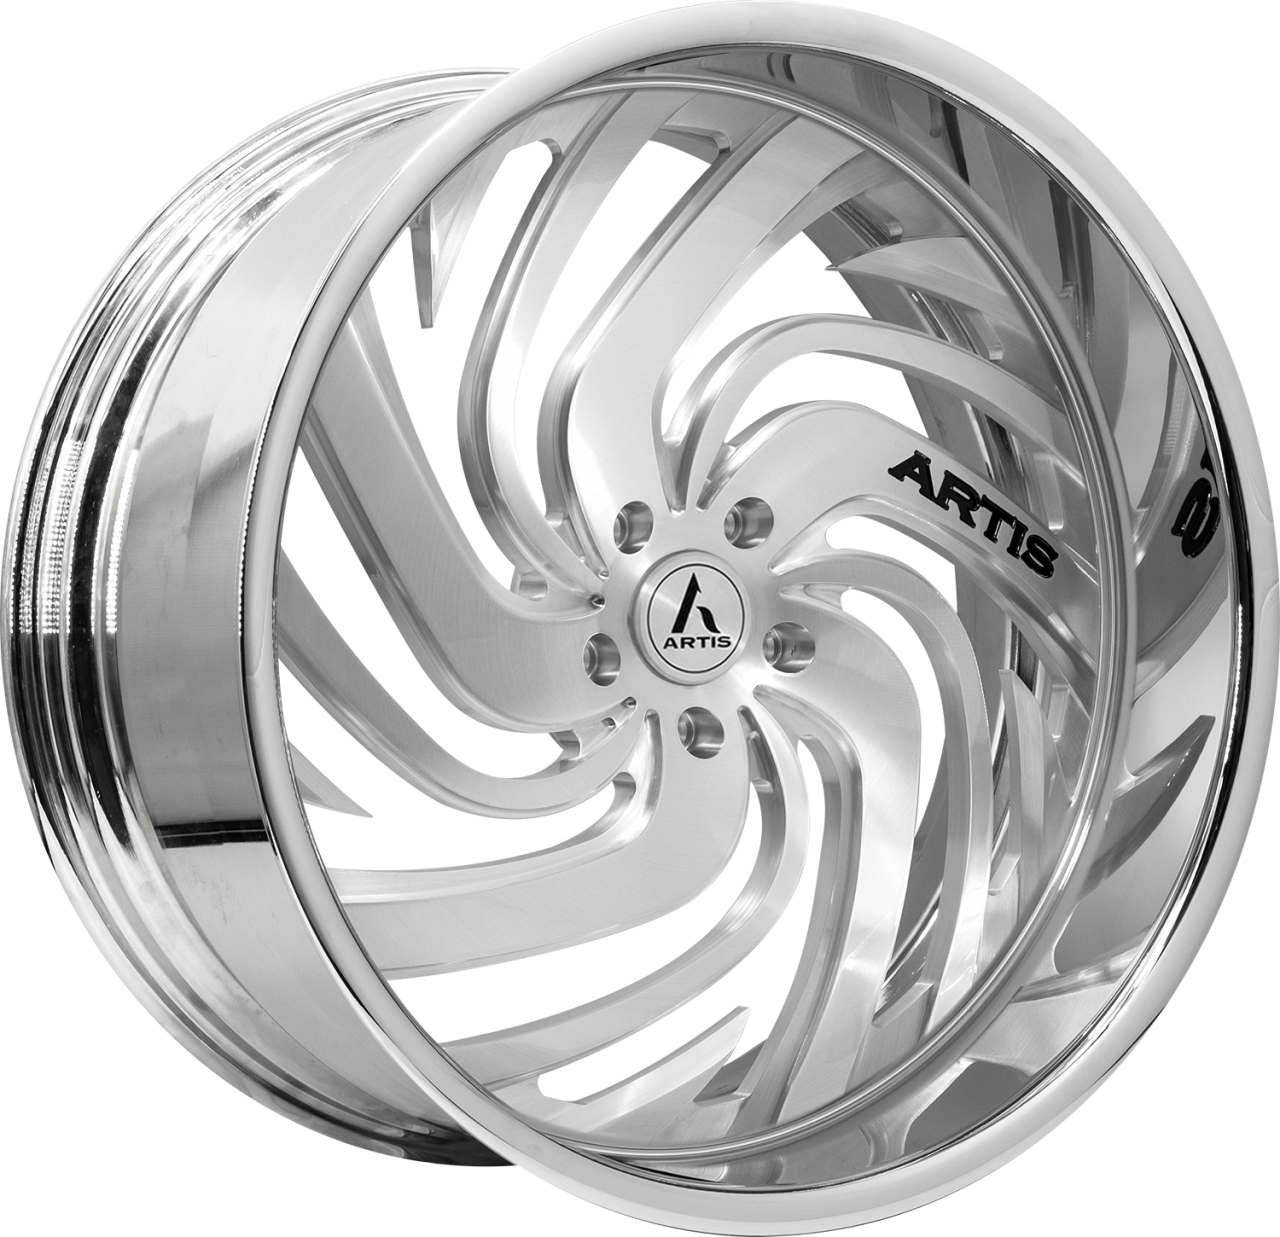 Artis Forged Fillmore-M wheel with Brushed finish